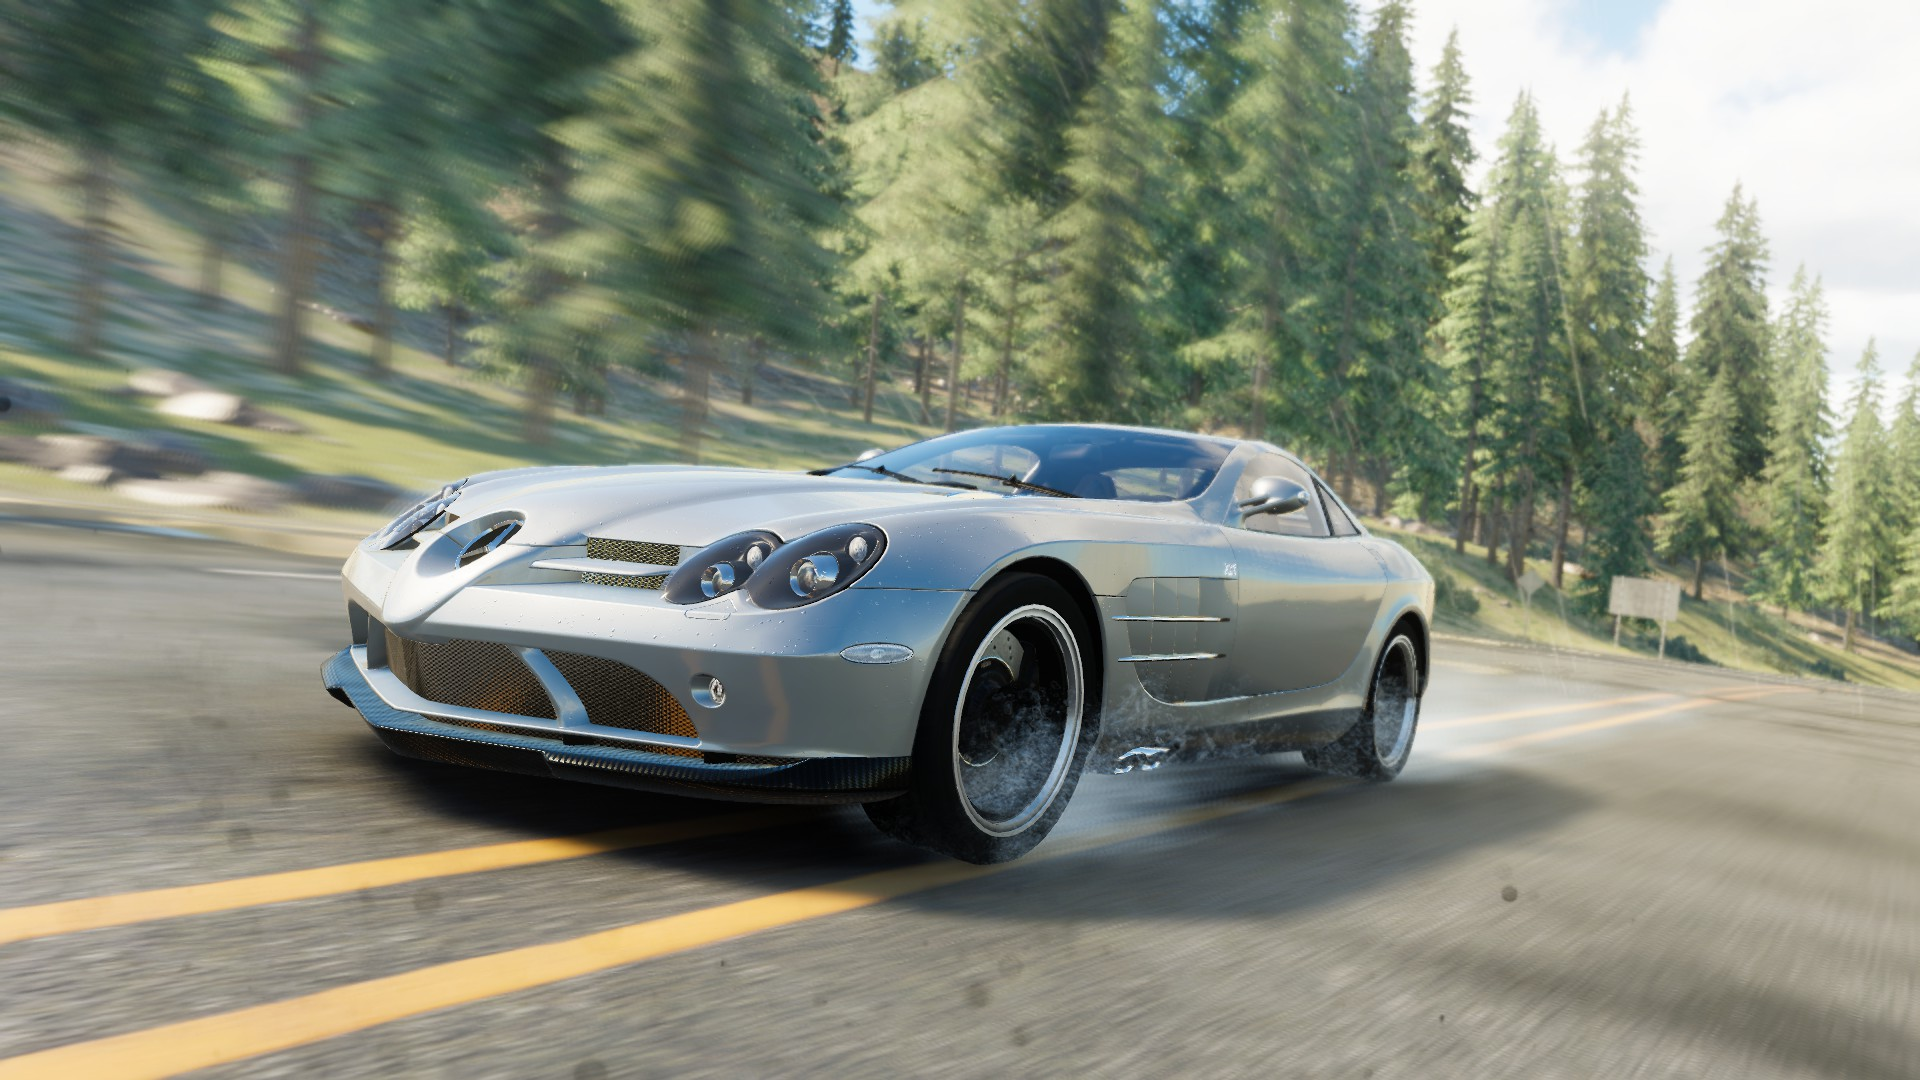 Mercedes benz slr mclaren 722 edition the crew wiki for Mercedes benz slr mclaren price